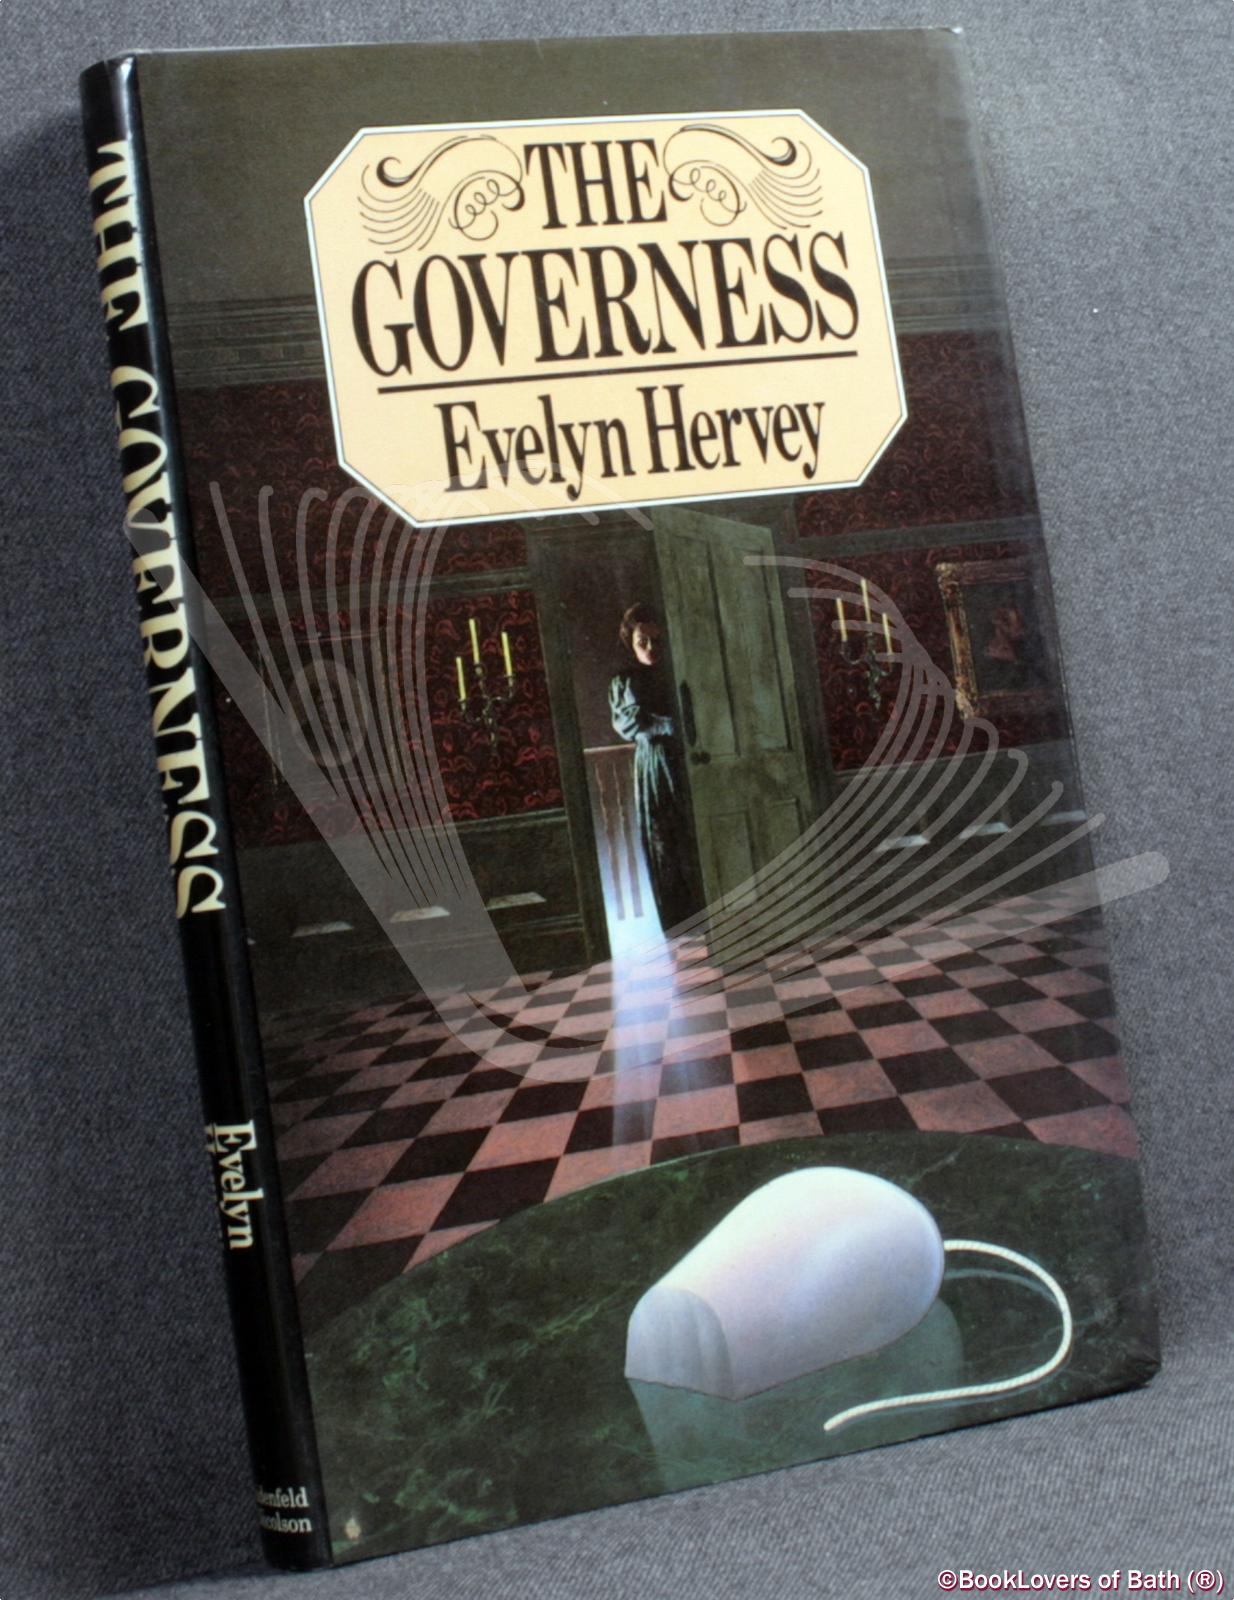 The Governess: A Novel - Evelyn Hervey